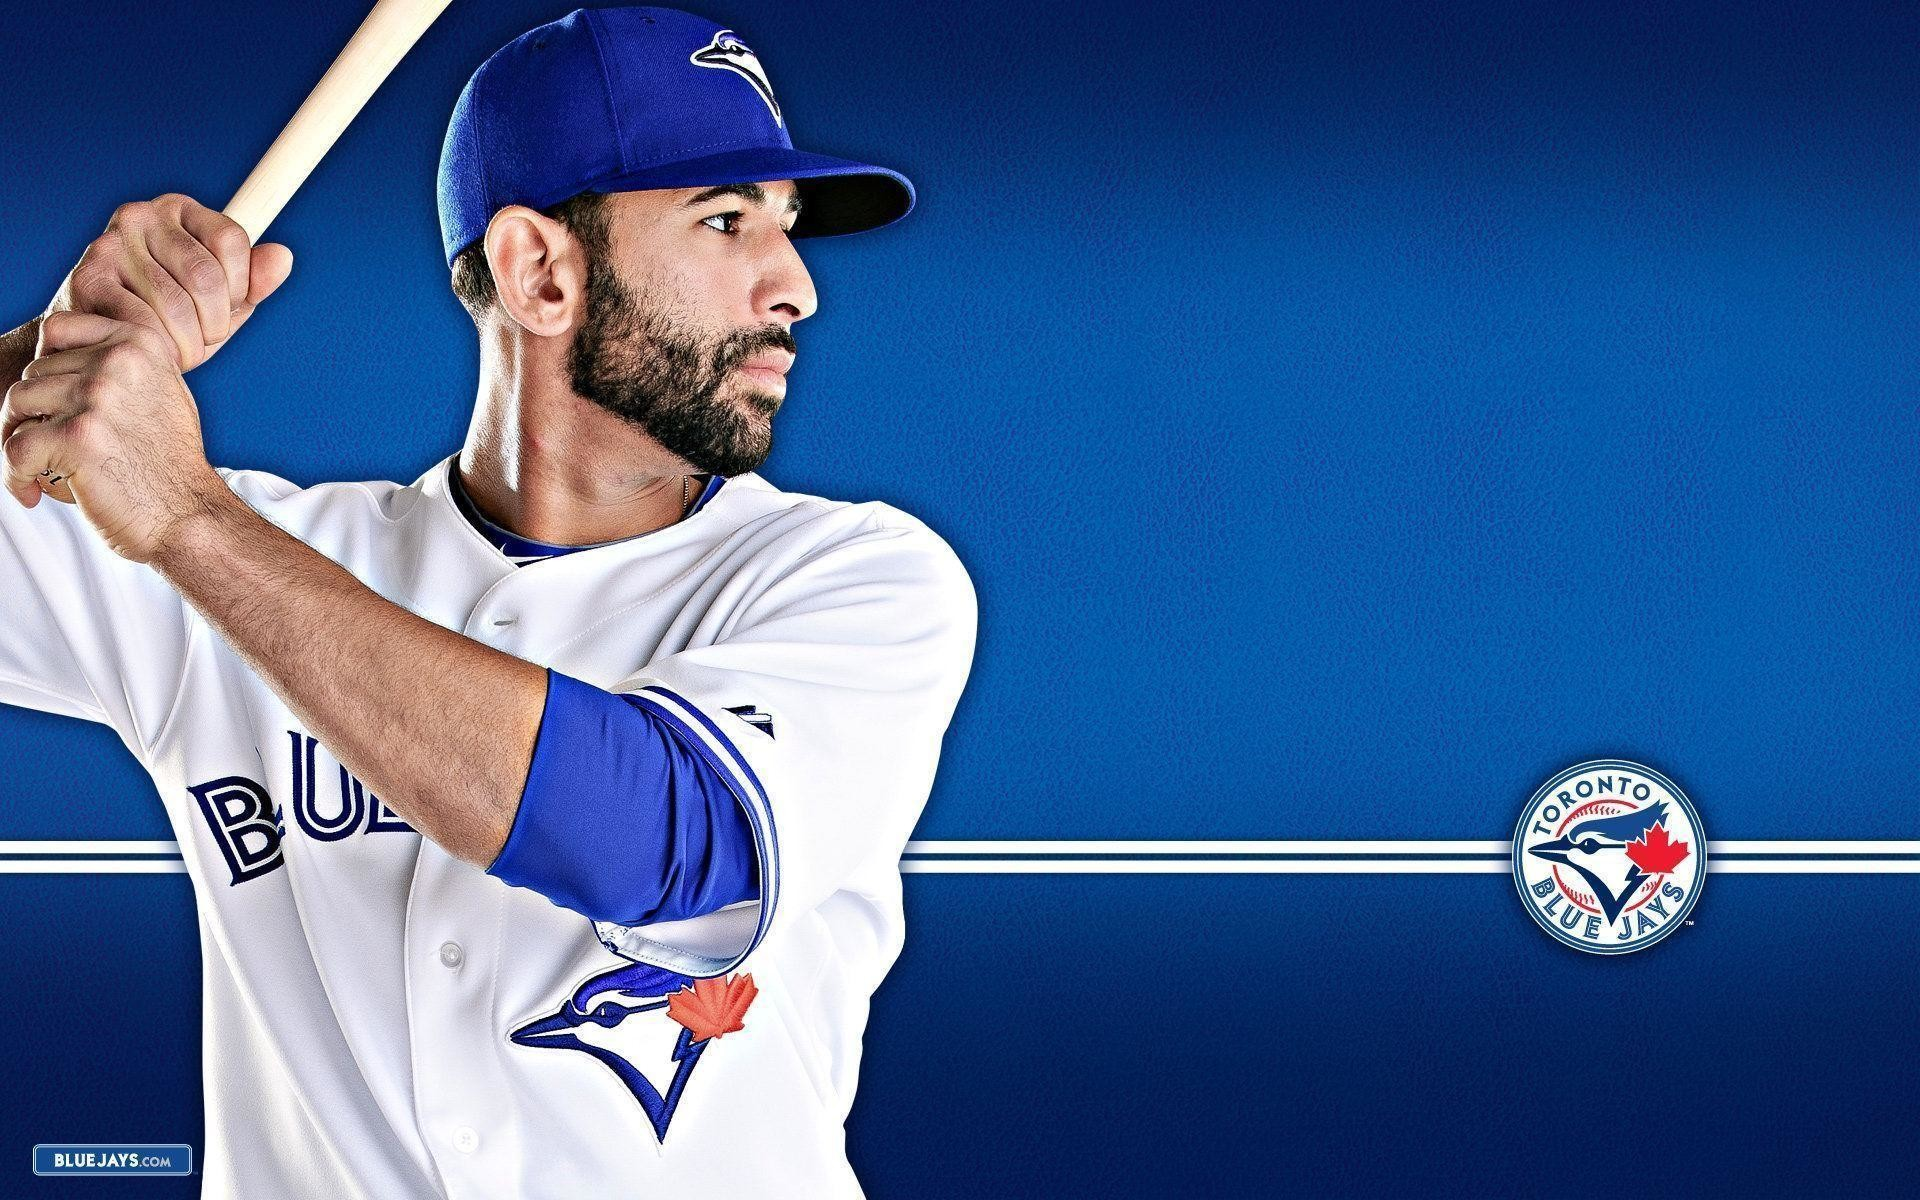 1920x1200 Jose Bautista | HD Wallpapers